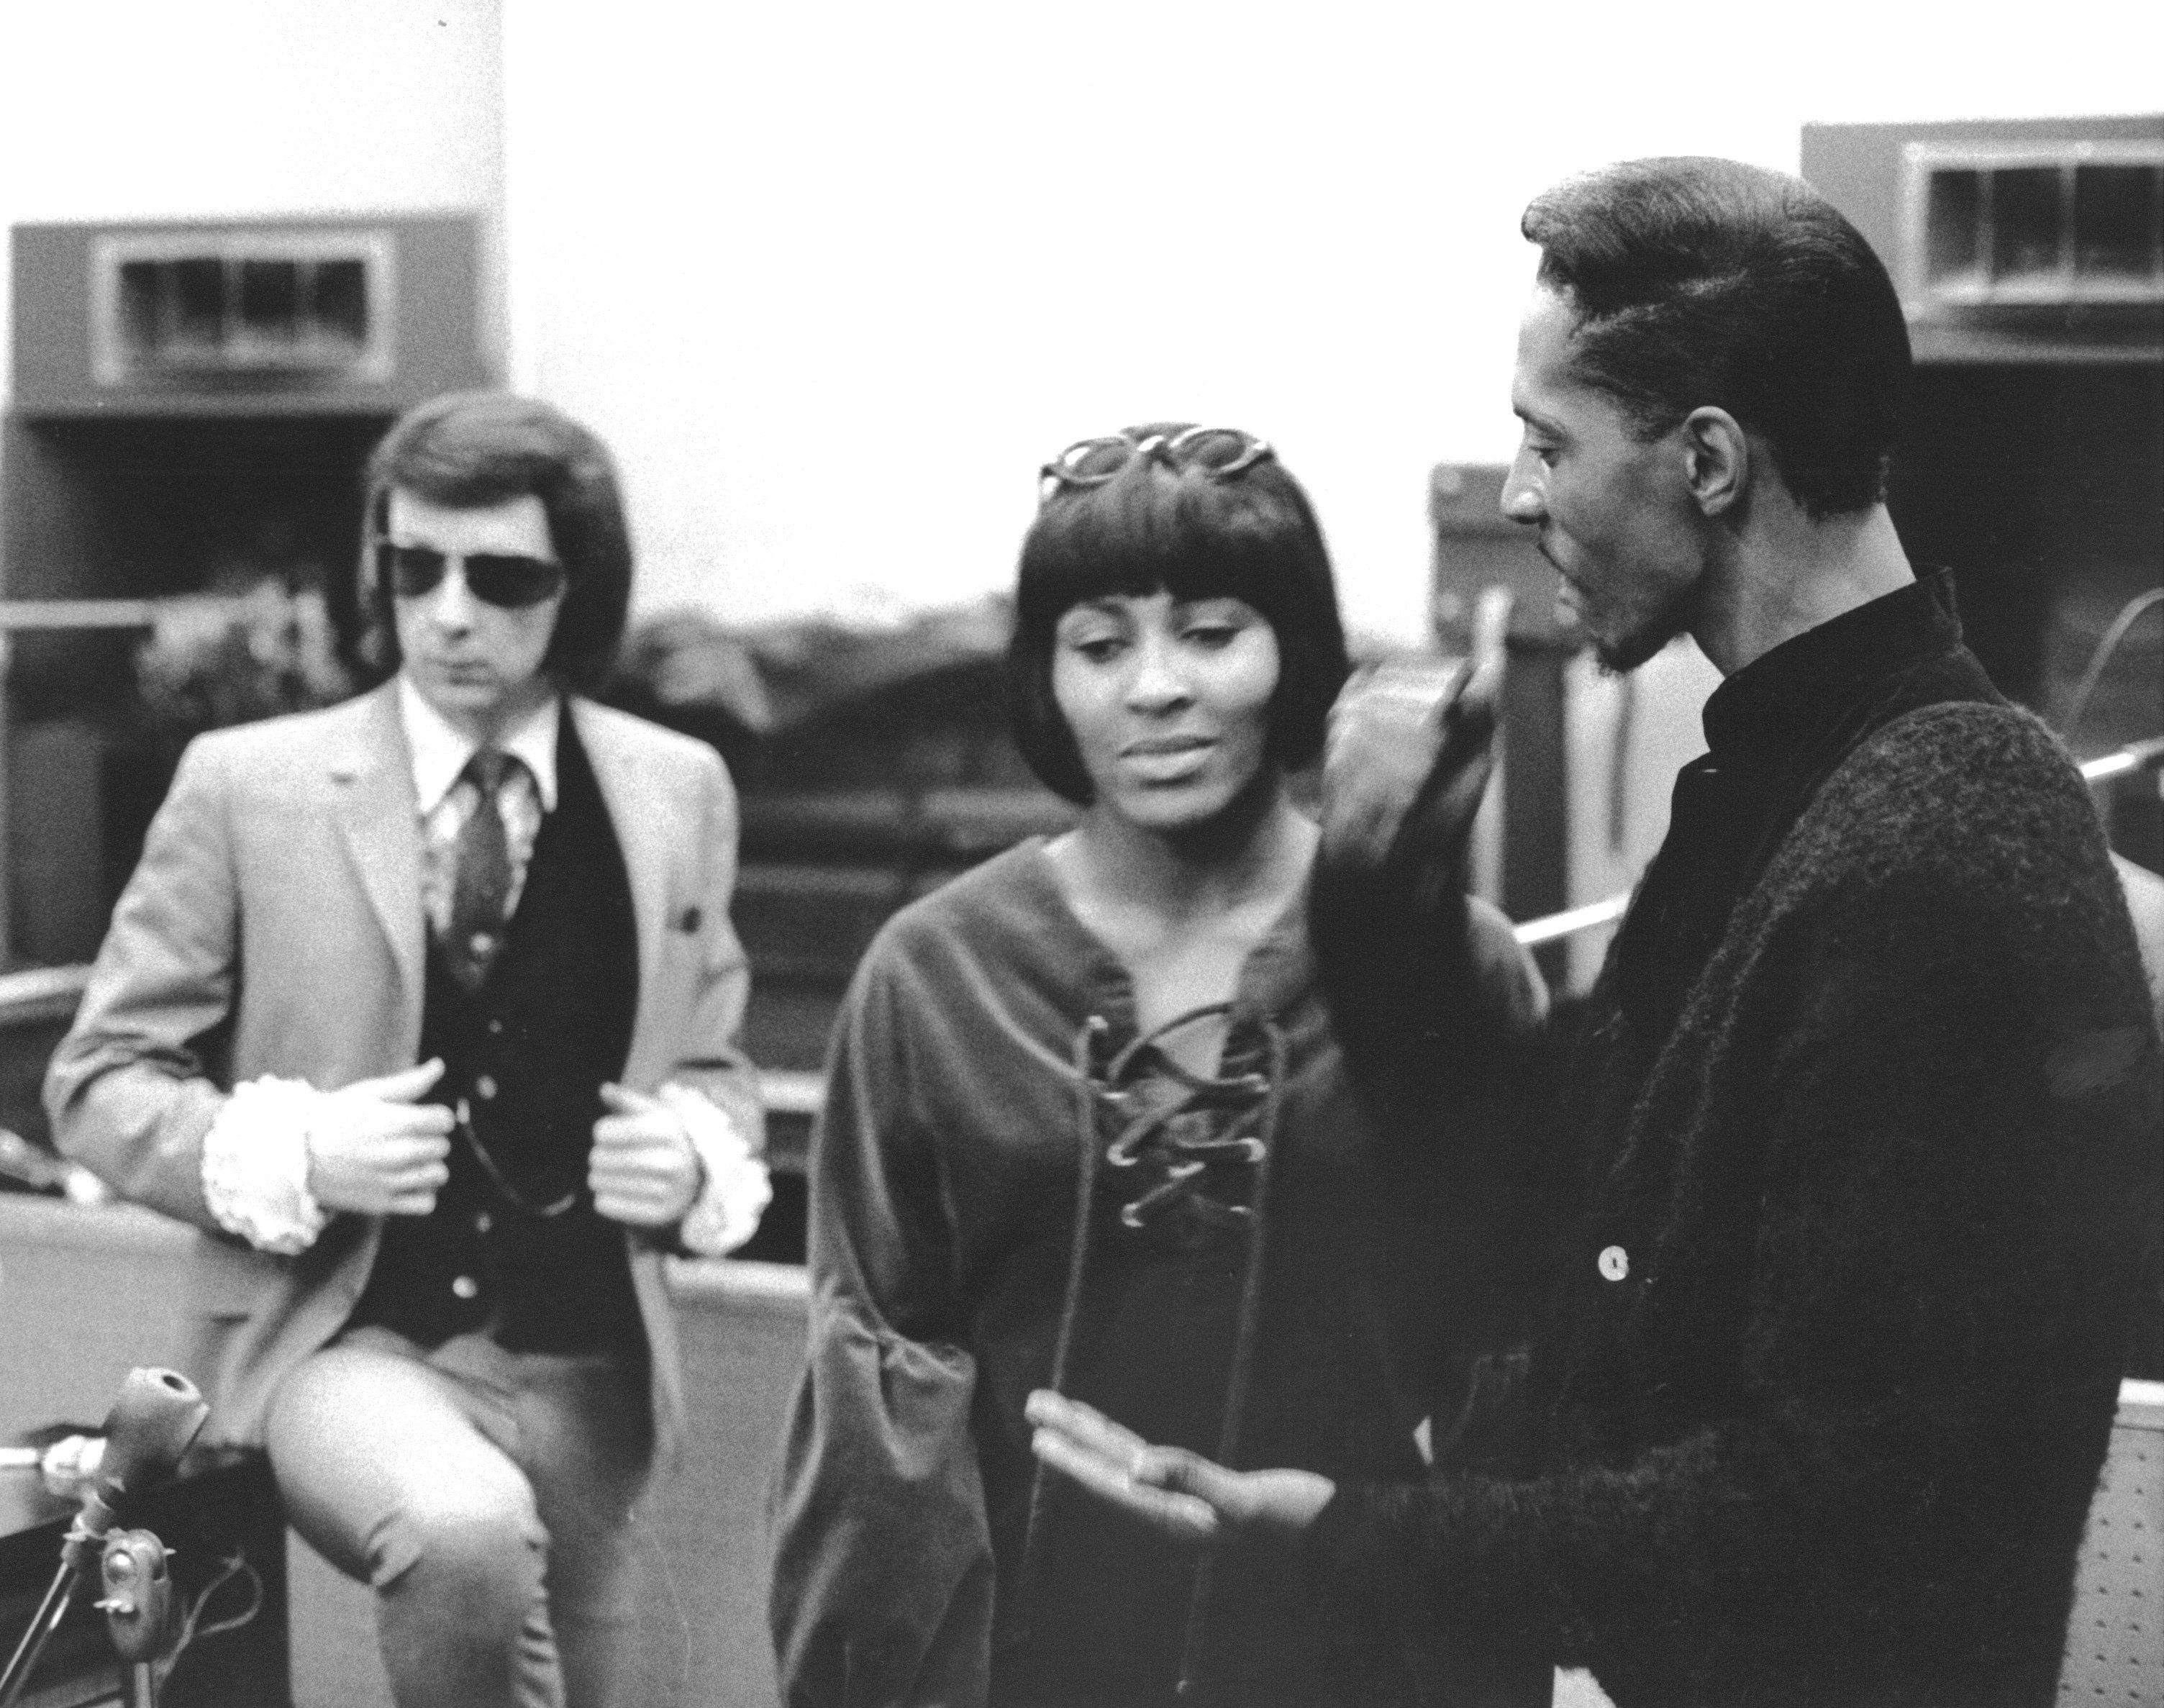 Spector stands behind Ike and Tina Turner atGold Star Studios in Los Angeles in 1966.